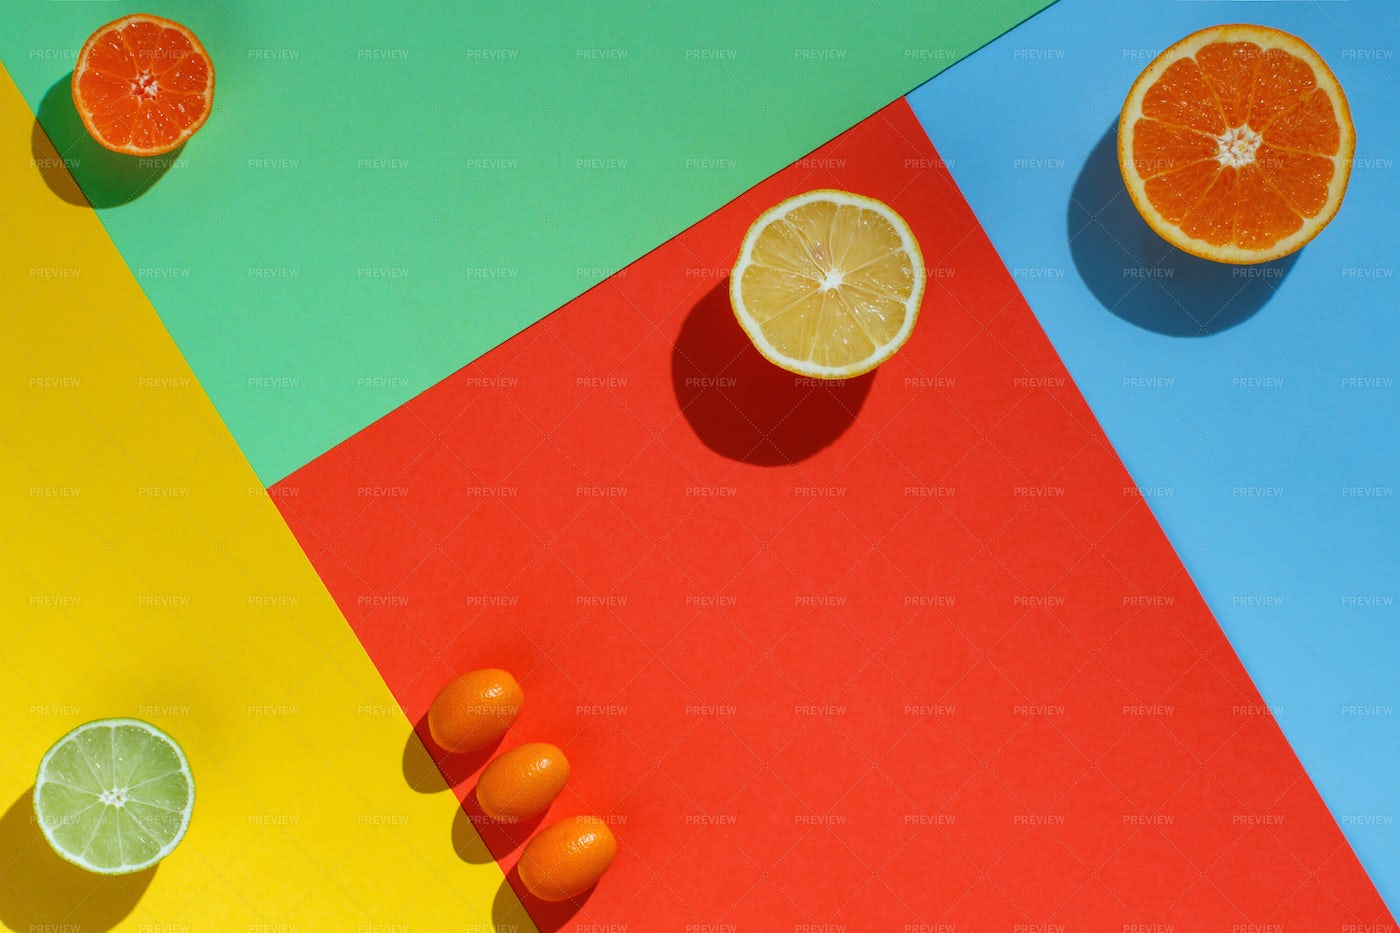 Colorful Papers And Citrus: Stock Photos